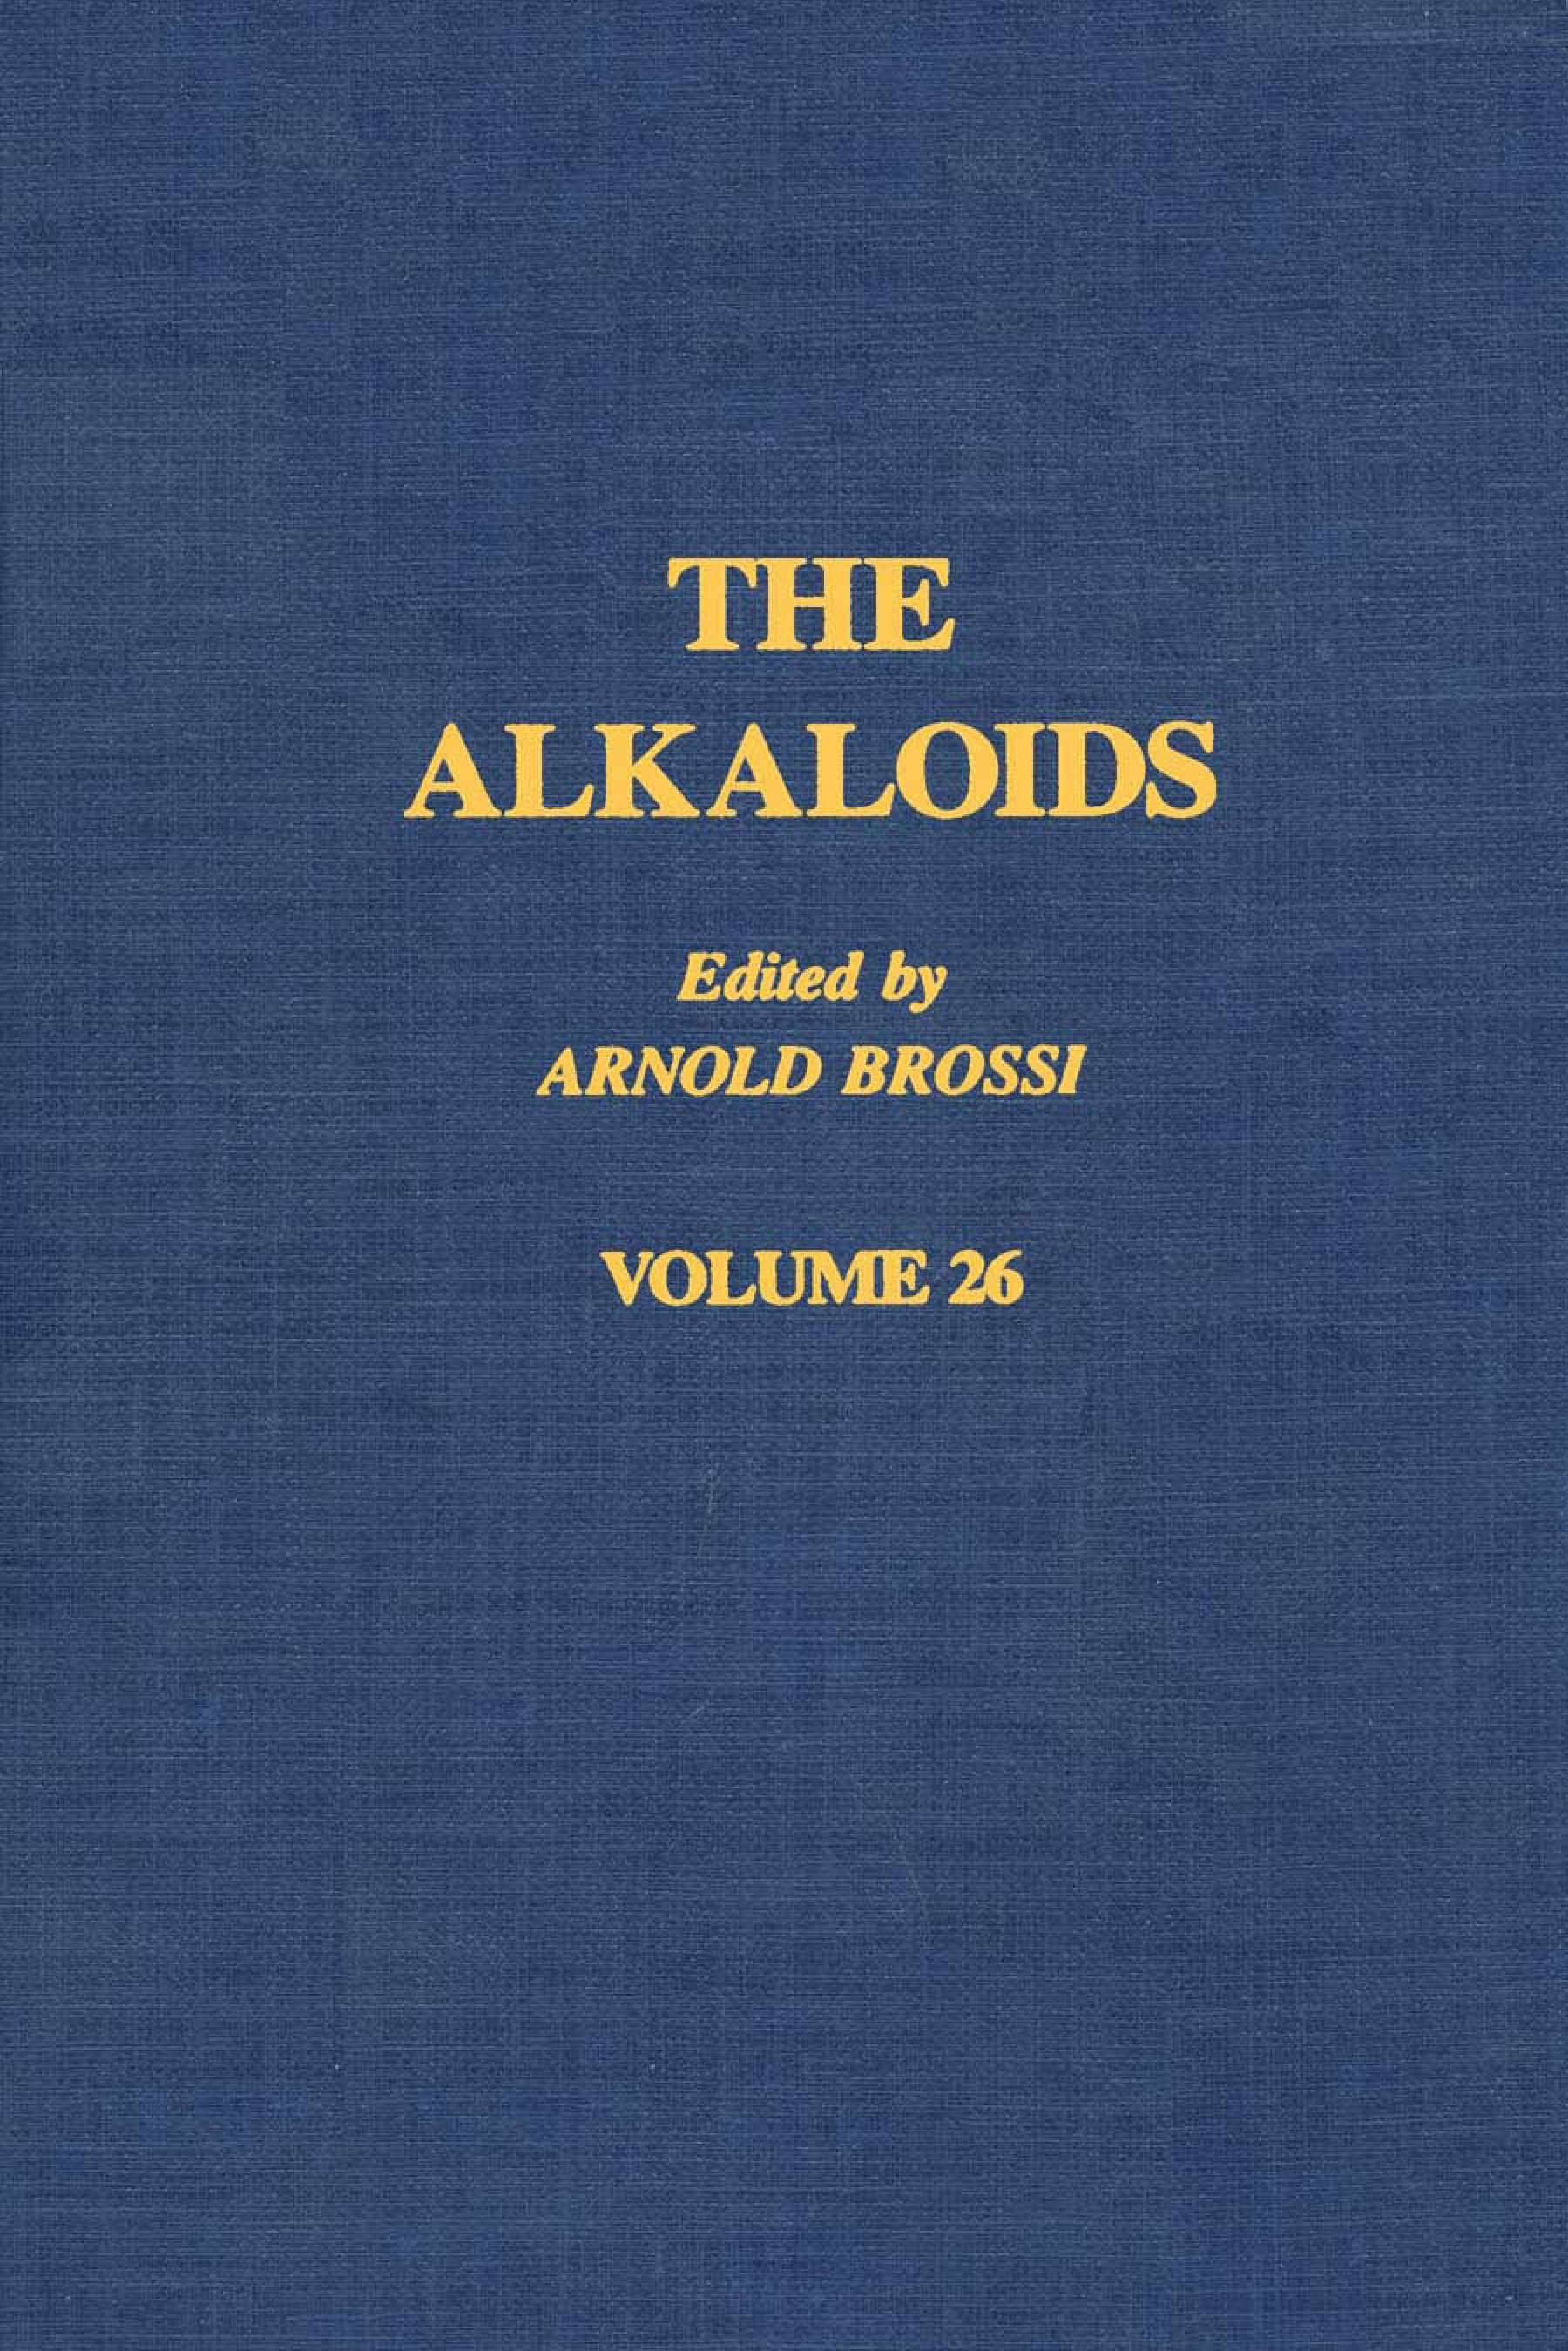 The Alkaloids: Chemistry and Pharmacology V26: Chemistry and Pharmacology V26 EB9780080865508